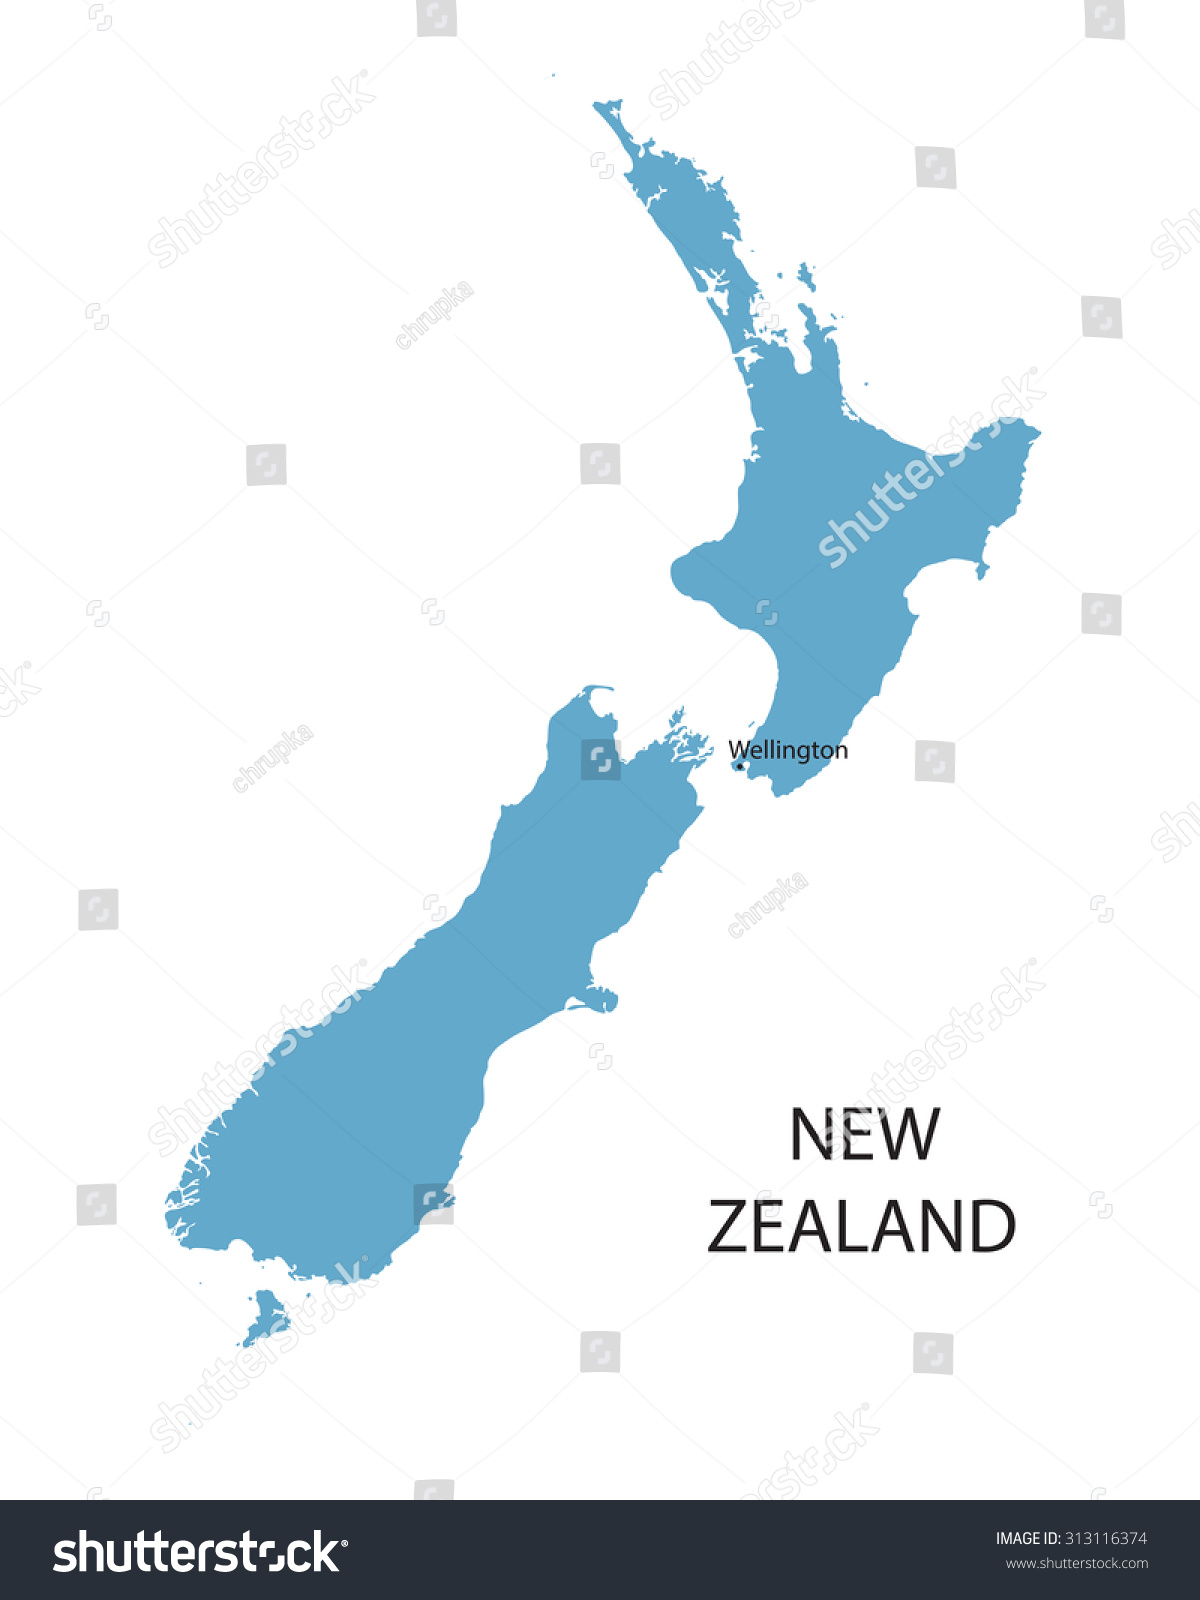 Where Is Wellington New Zealand On The Map.Blue Map New Zealand Indication Wellington Stock Vector Royalty